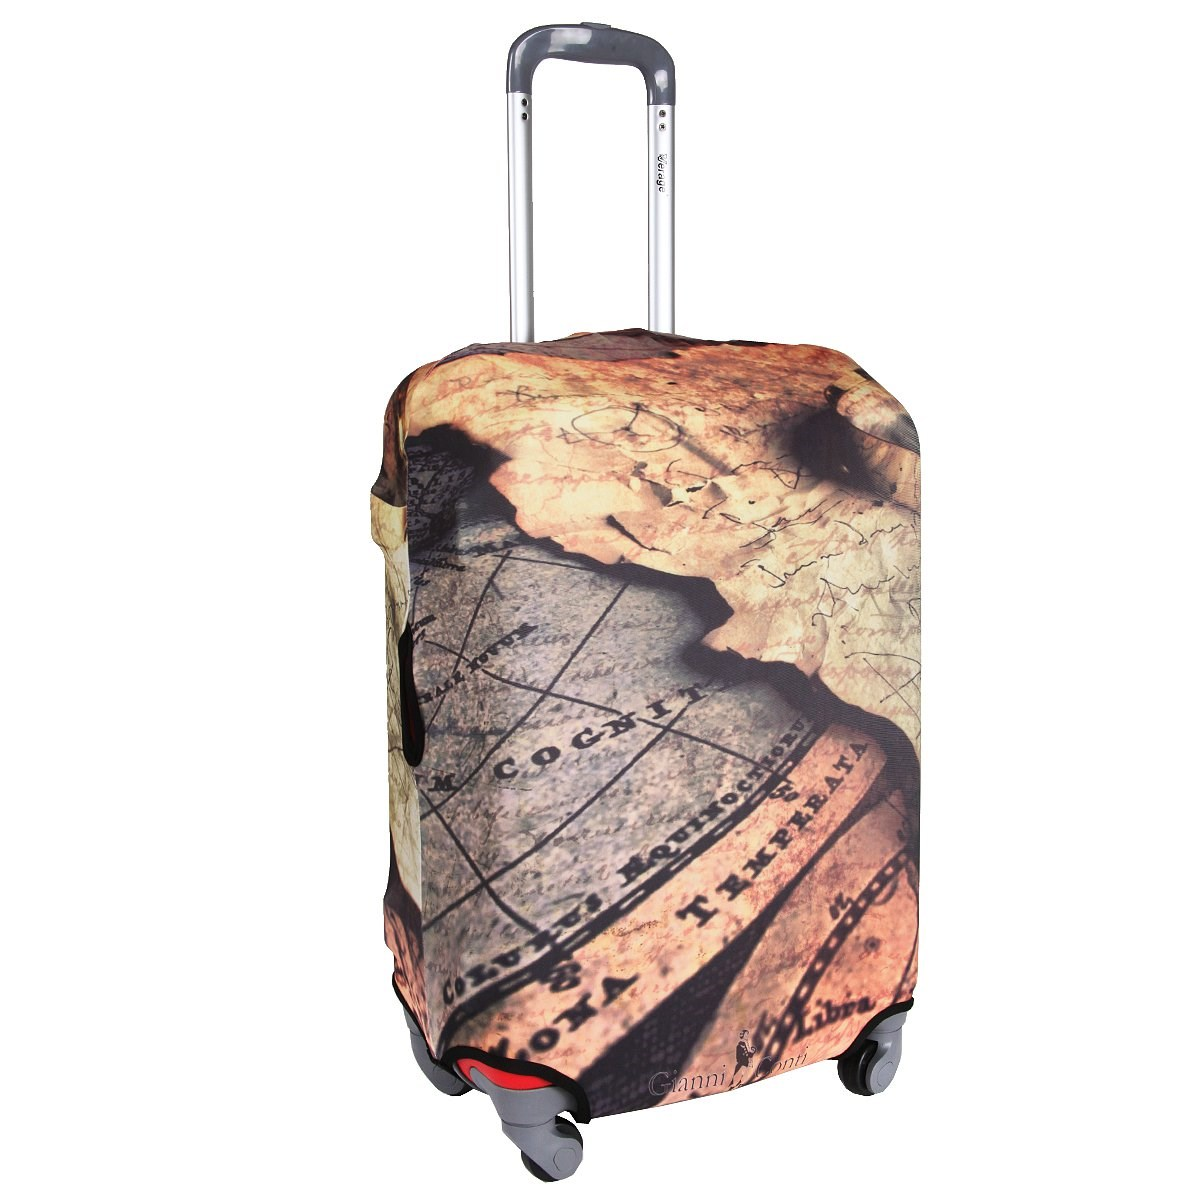 Protective cover for suitcase 9010 M protective cover for suitcase 9005 m